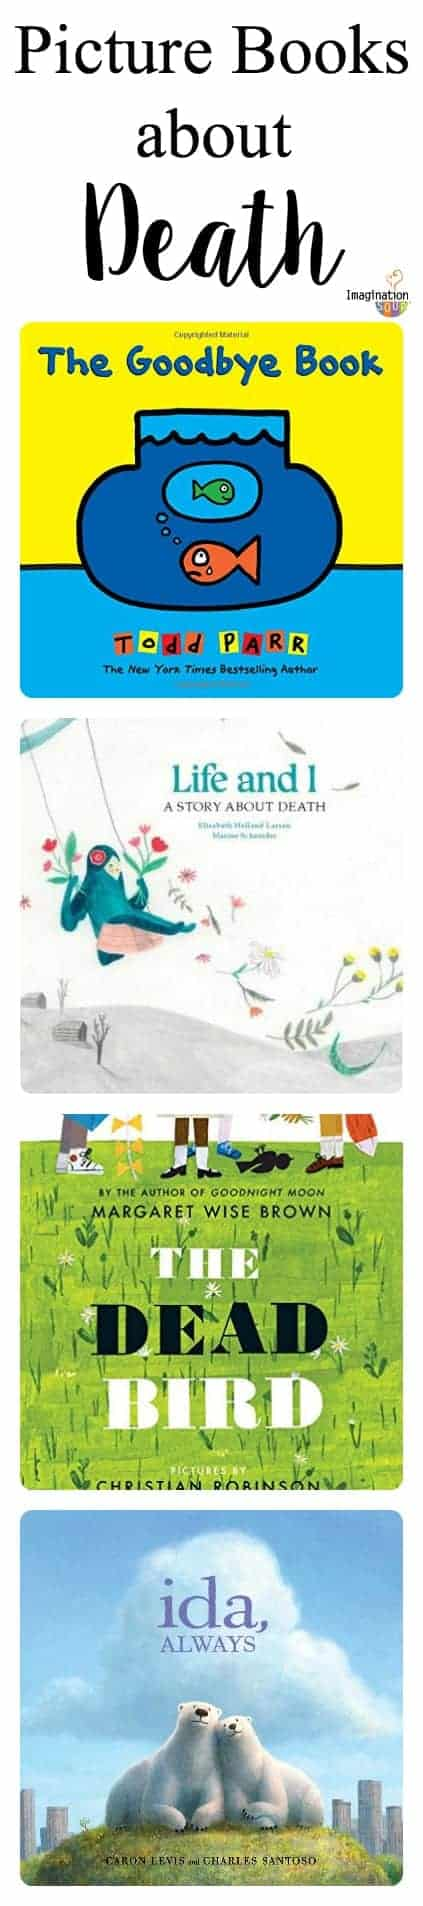 best picture books for kids about death and dying